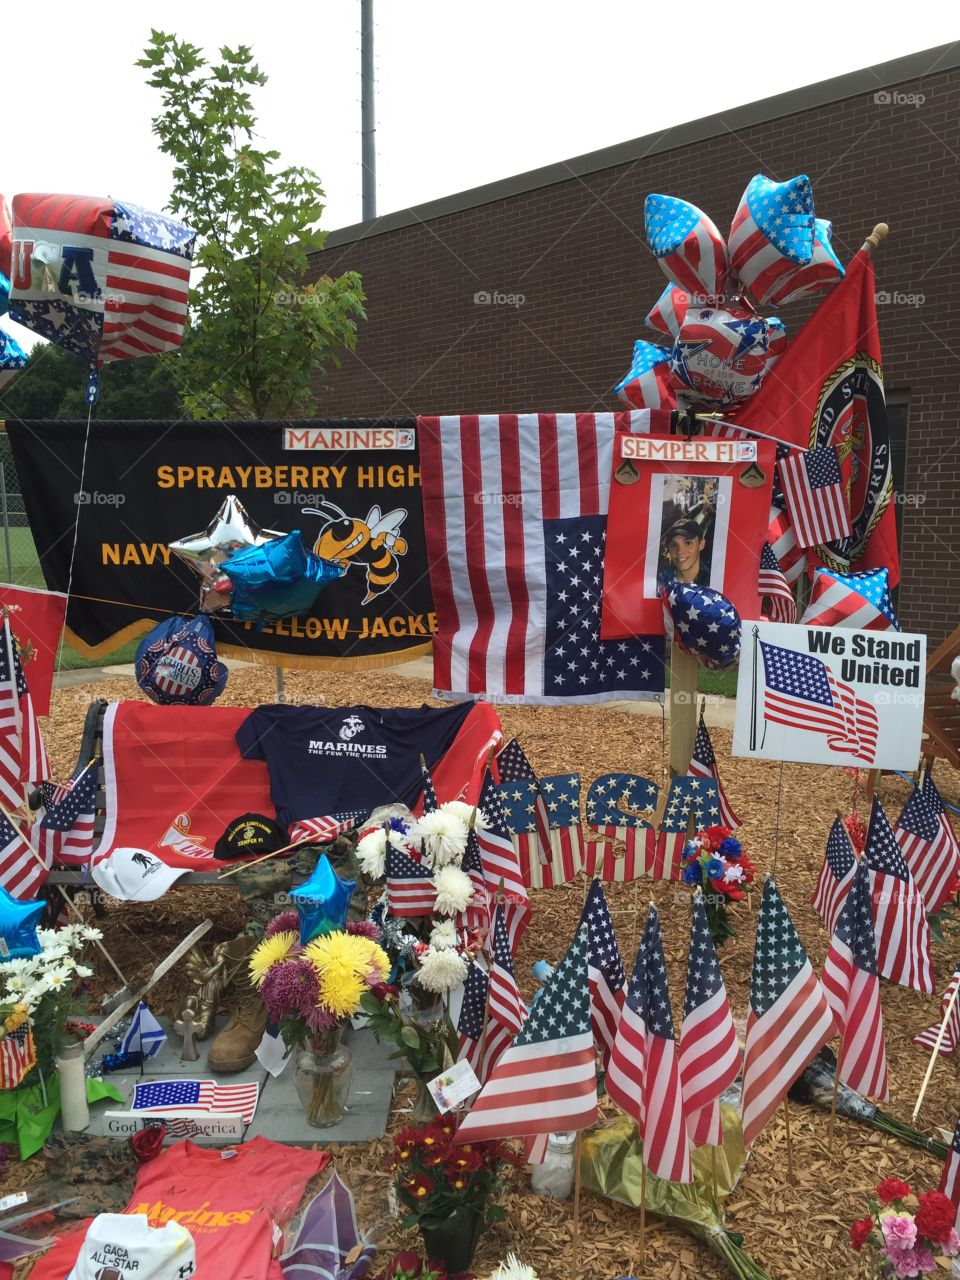 Memorial For Killed Marine . Memorial for Lance Corporal Skip Wells. Killed in the Chattanooga attack. This memorial is set up at his local H. School